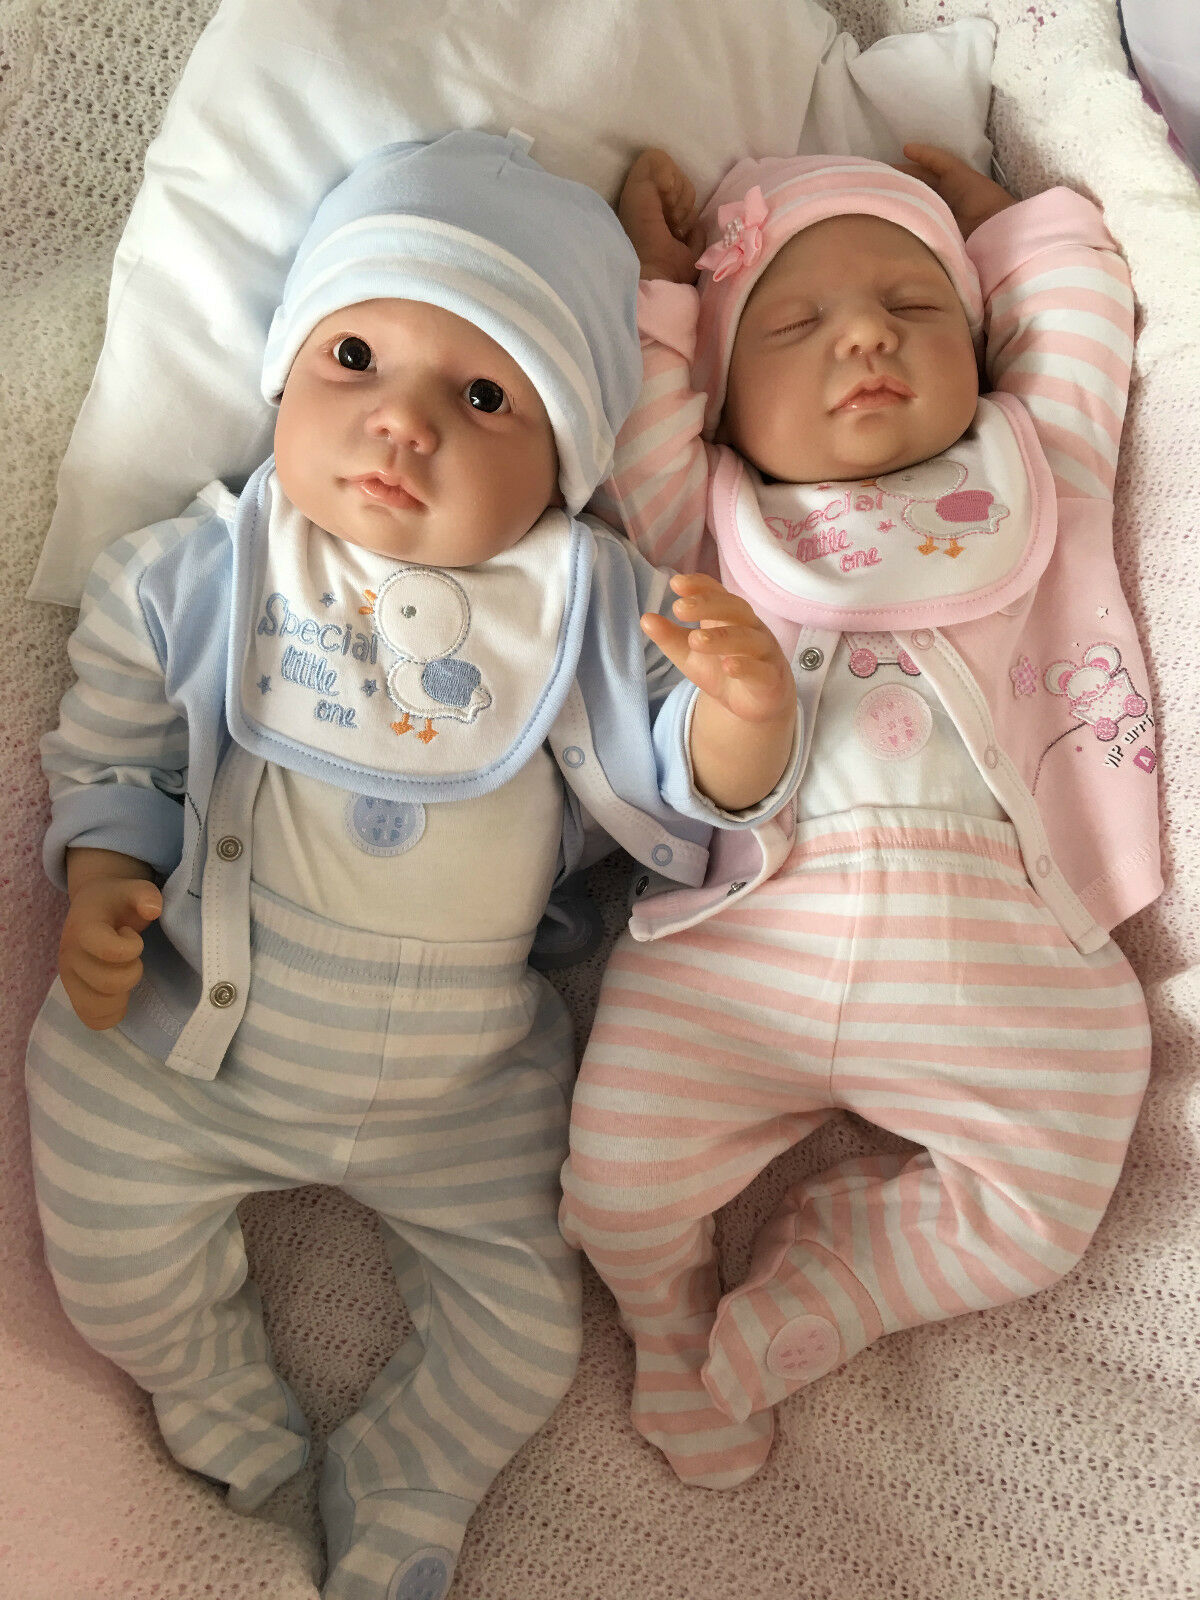 REBORN BABY TWINS 2DOLLS MY FAKE BABIES REALISTIC 22  BIG NEWBORN CHASE & MILEY